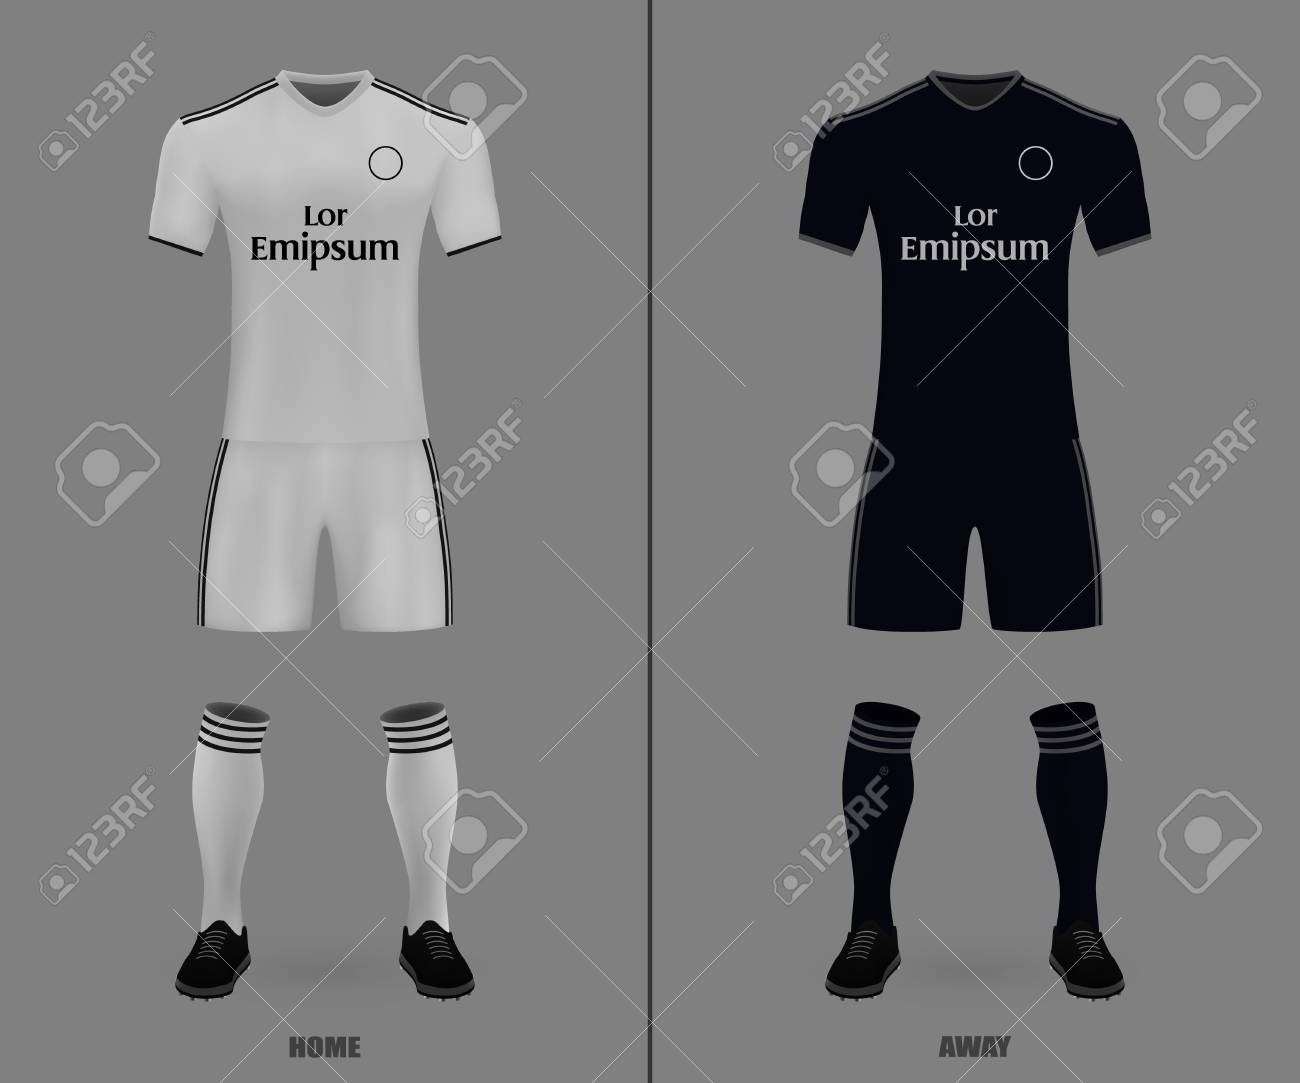 on sale a2d2f c24c3 football kit Real Madrid 2018-19, shirt template for soccer jersey...